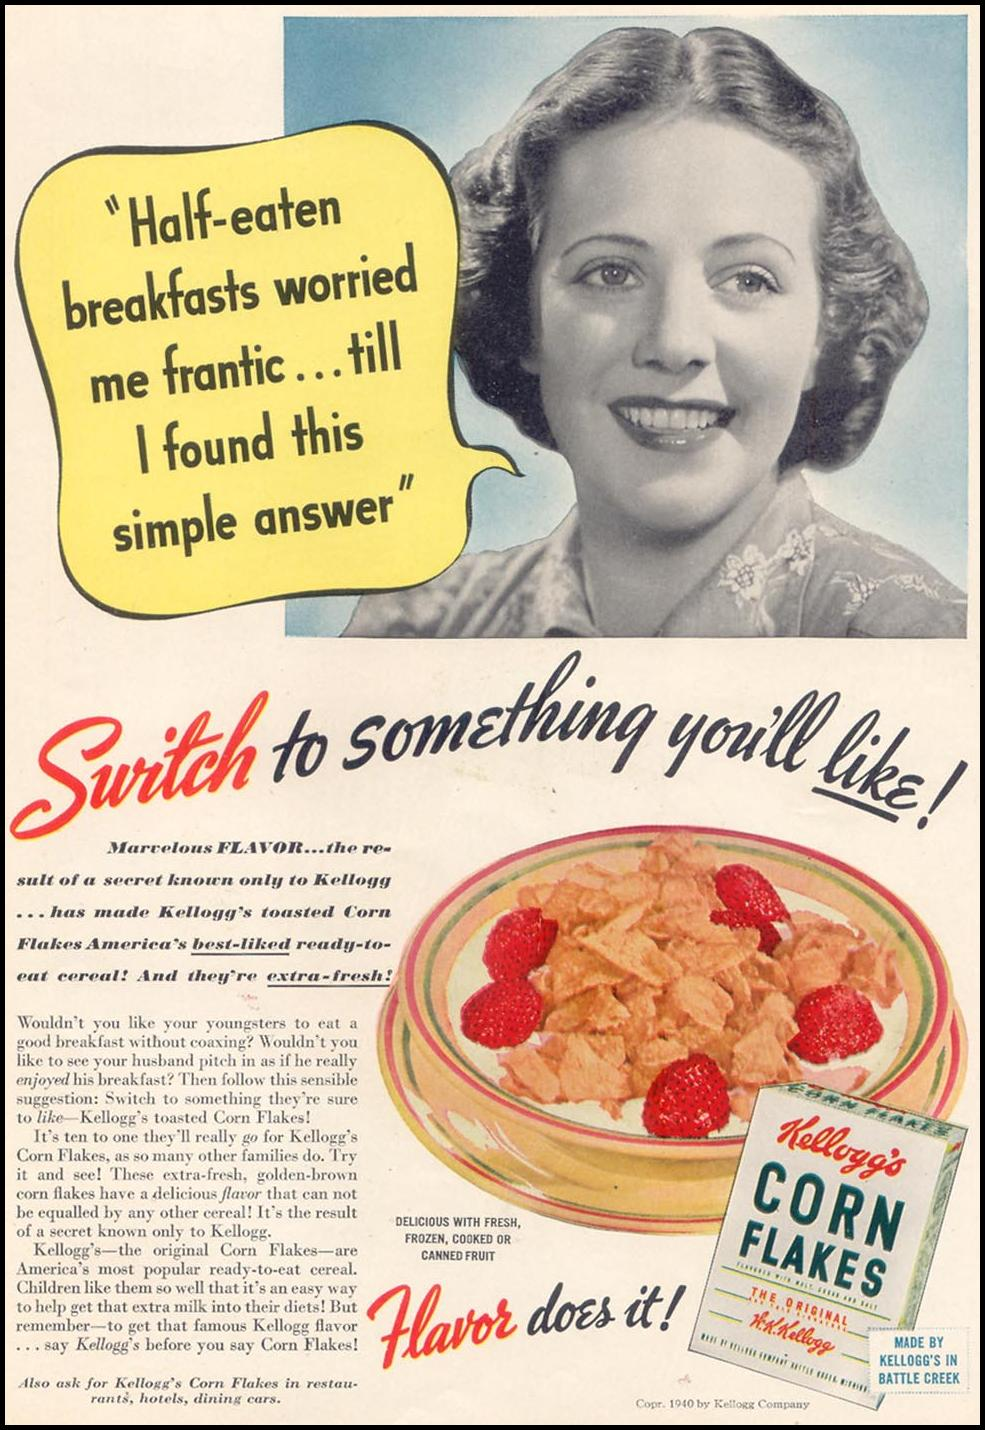 KELLOGG'S CORN FLAKES WOMAN'S DAY 07/01/1940